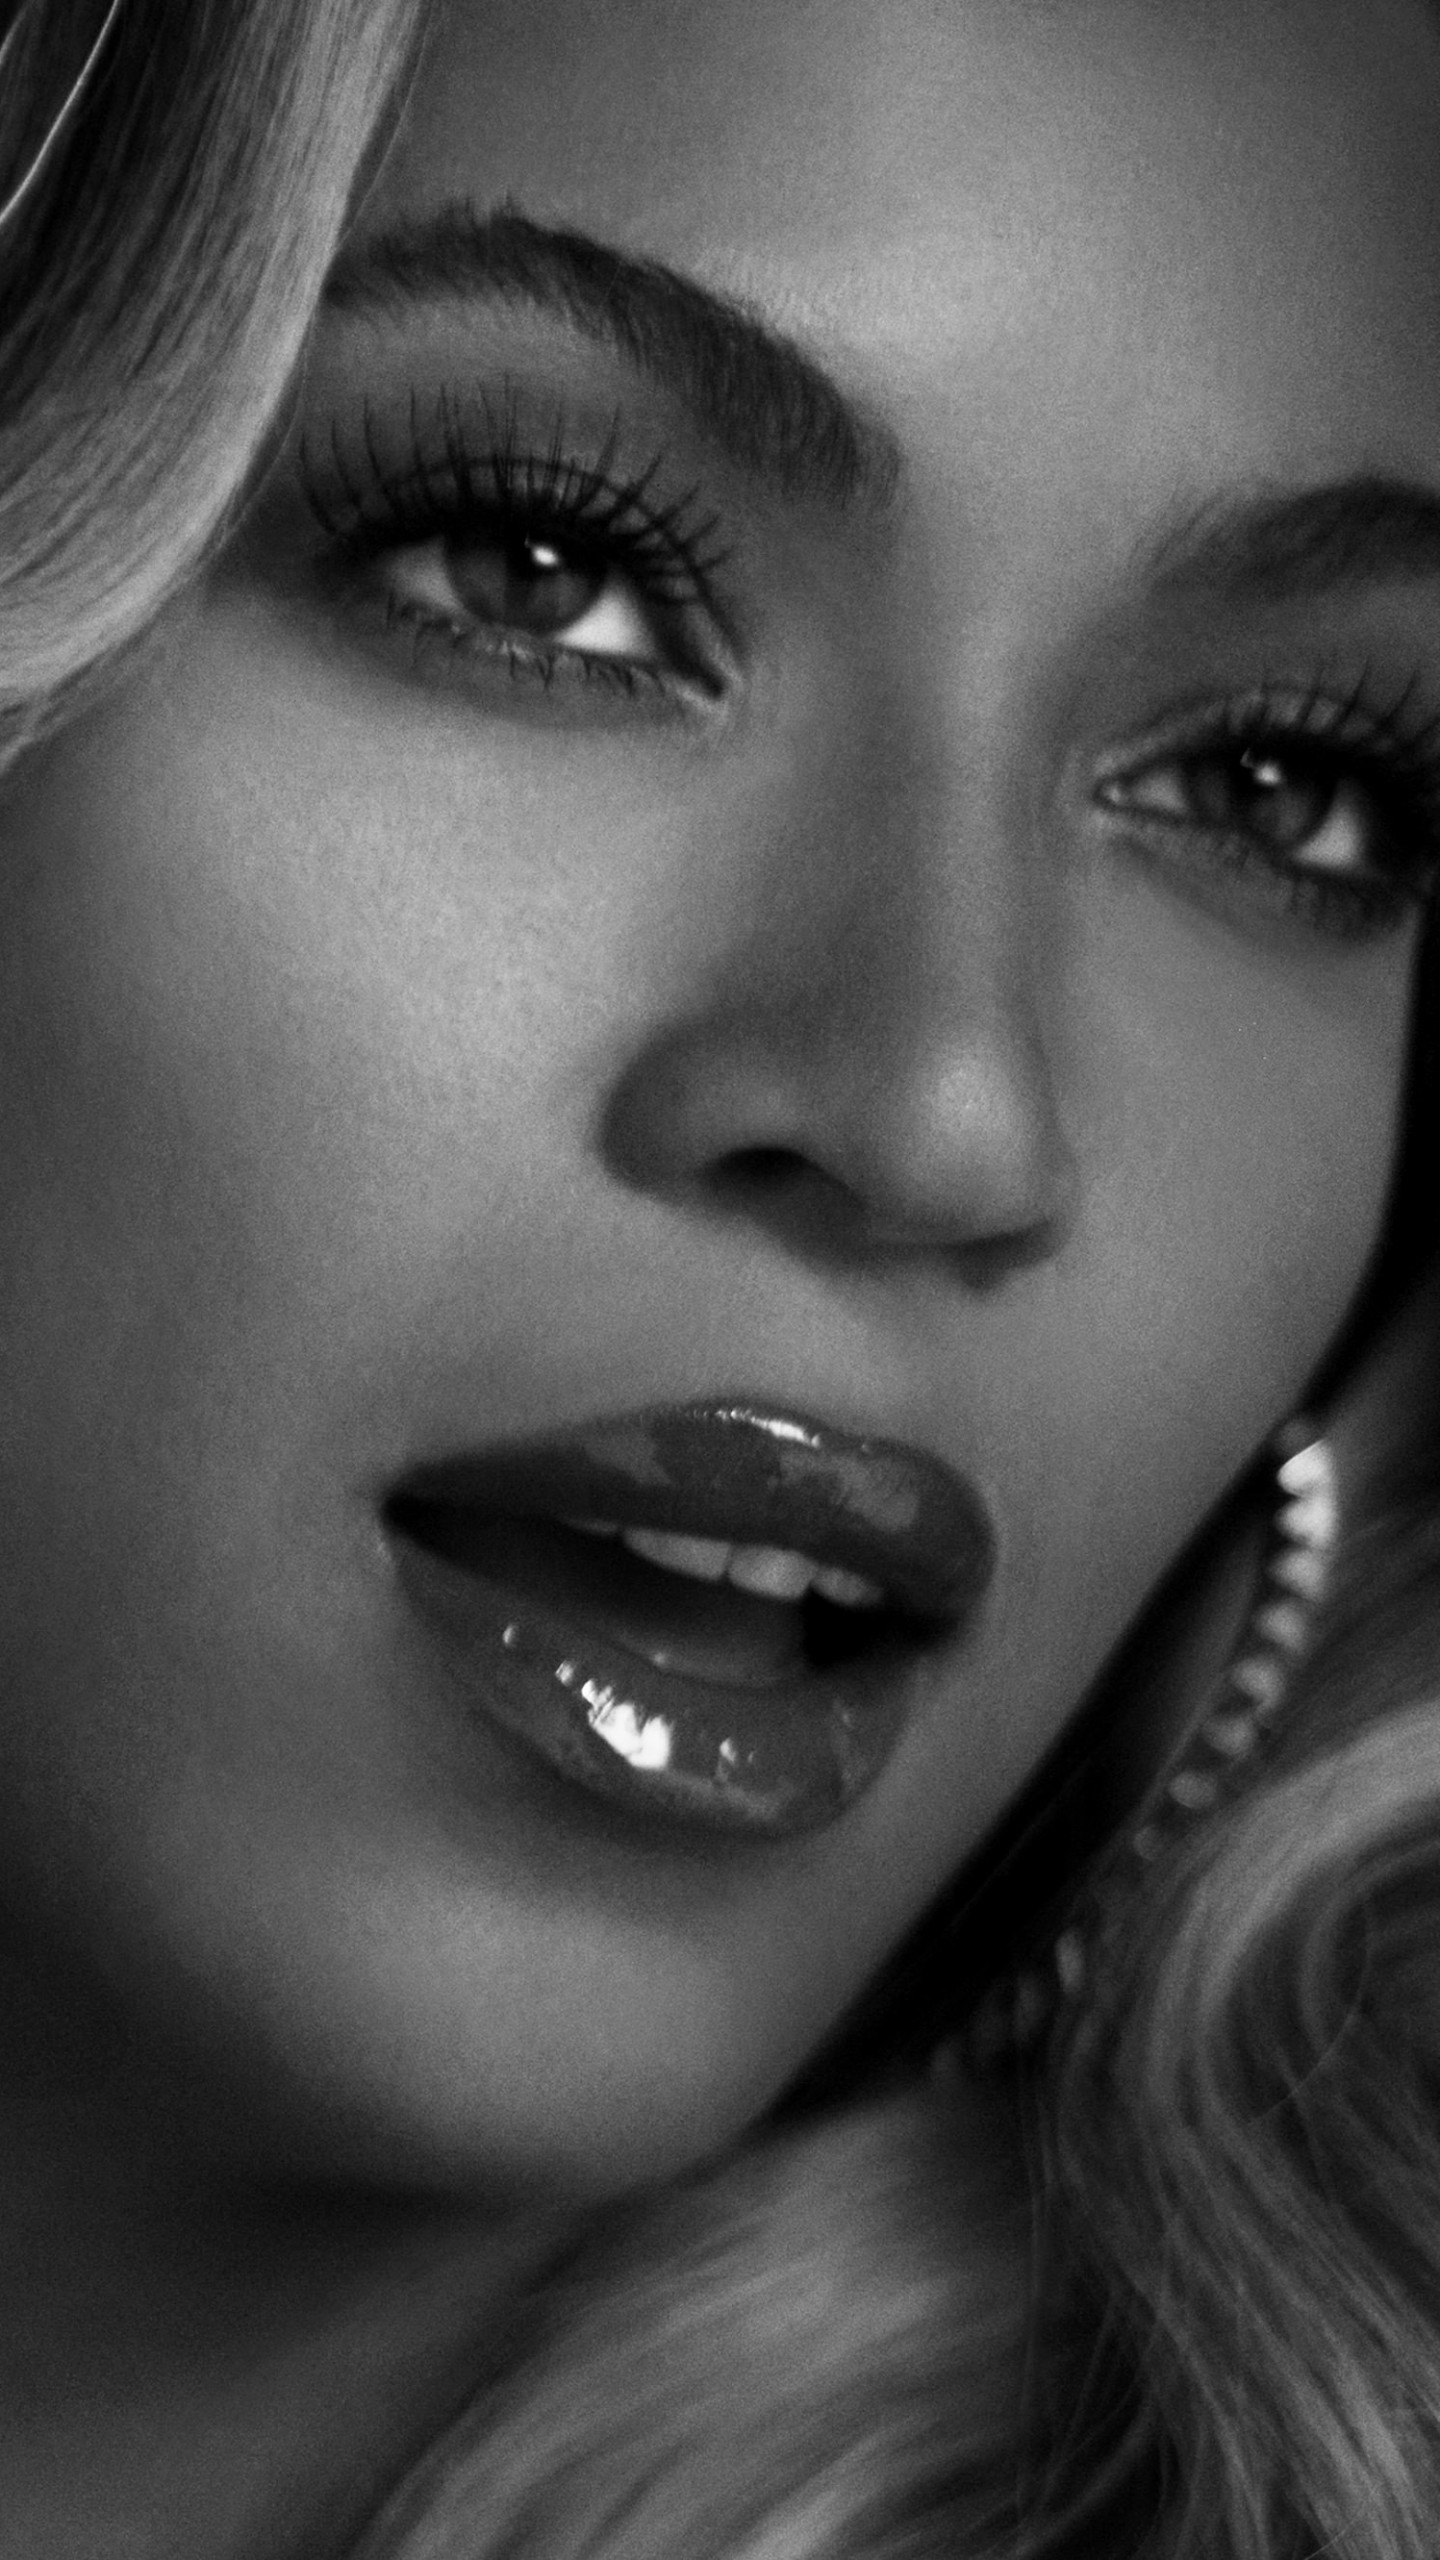 Beyonce in Black & White Wallpaper for LG G3